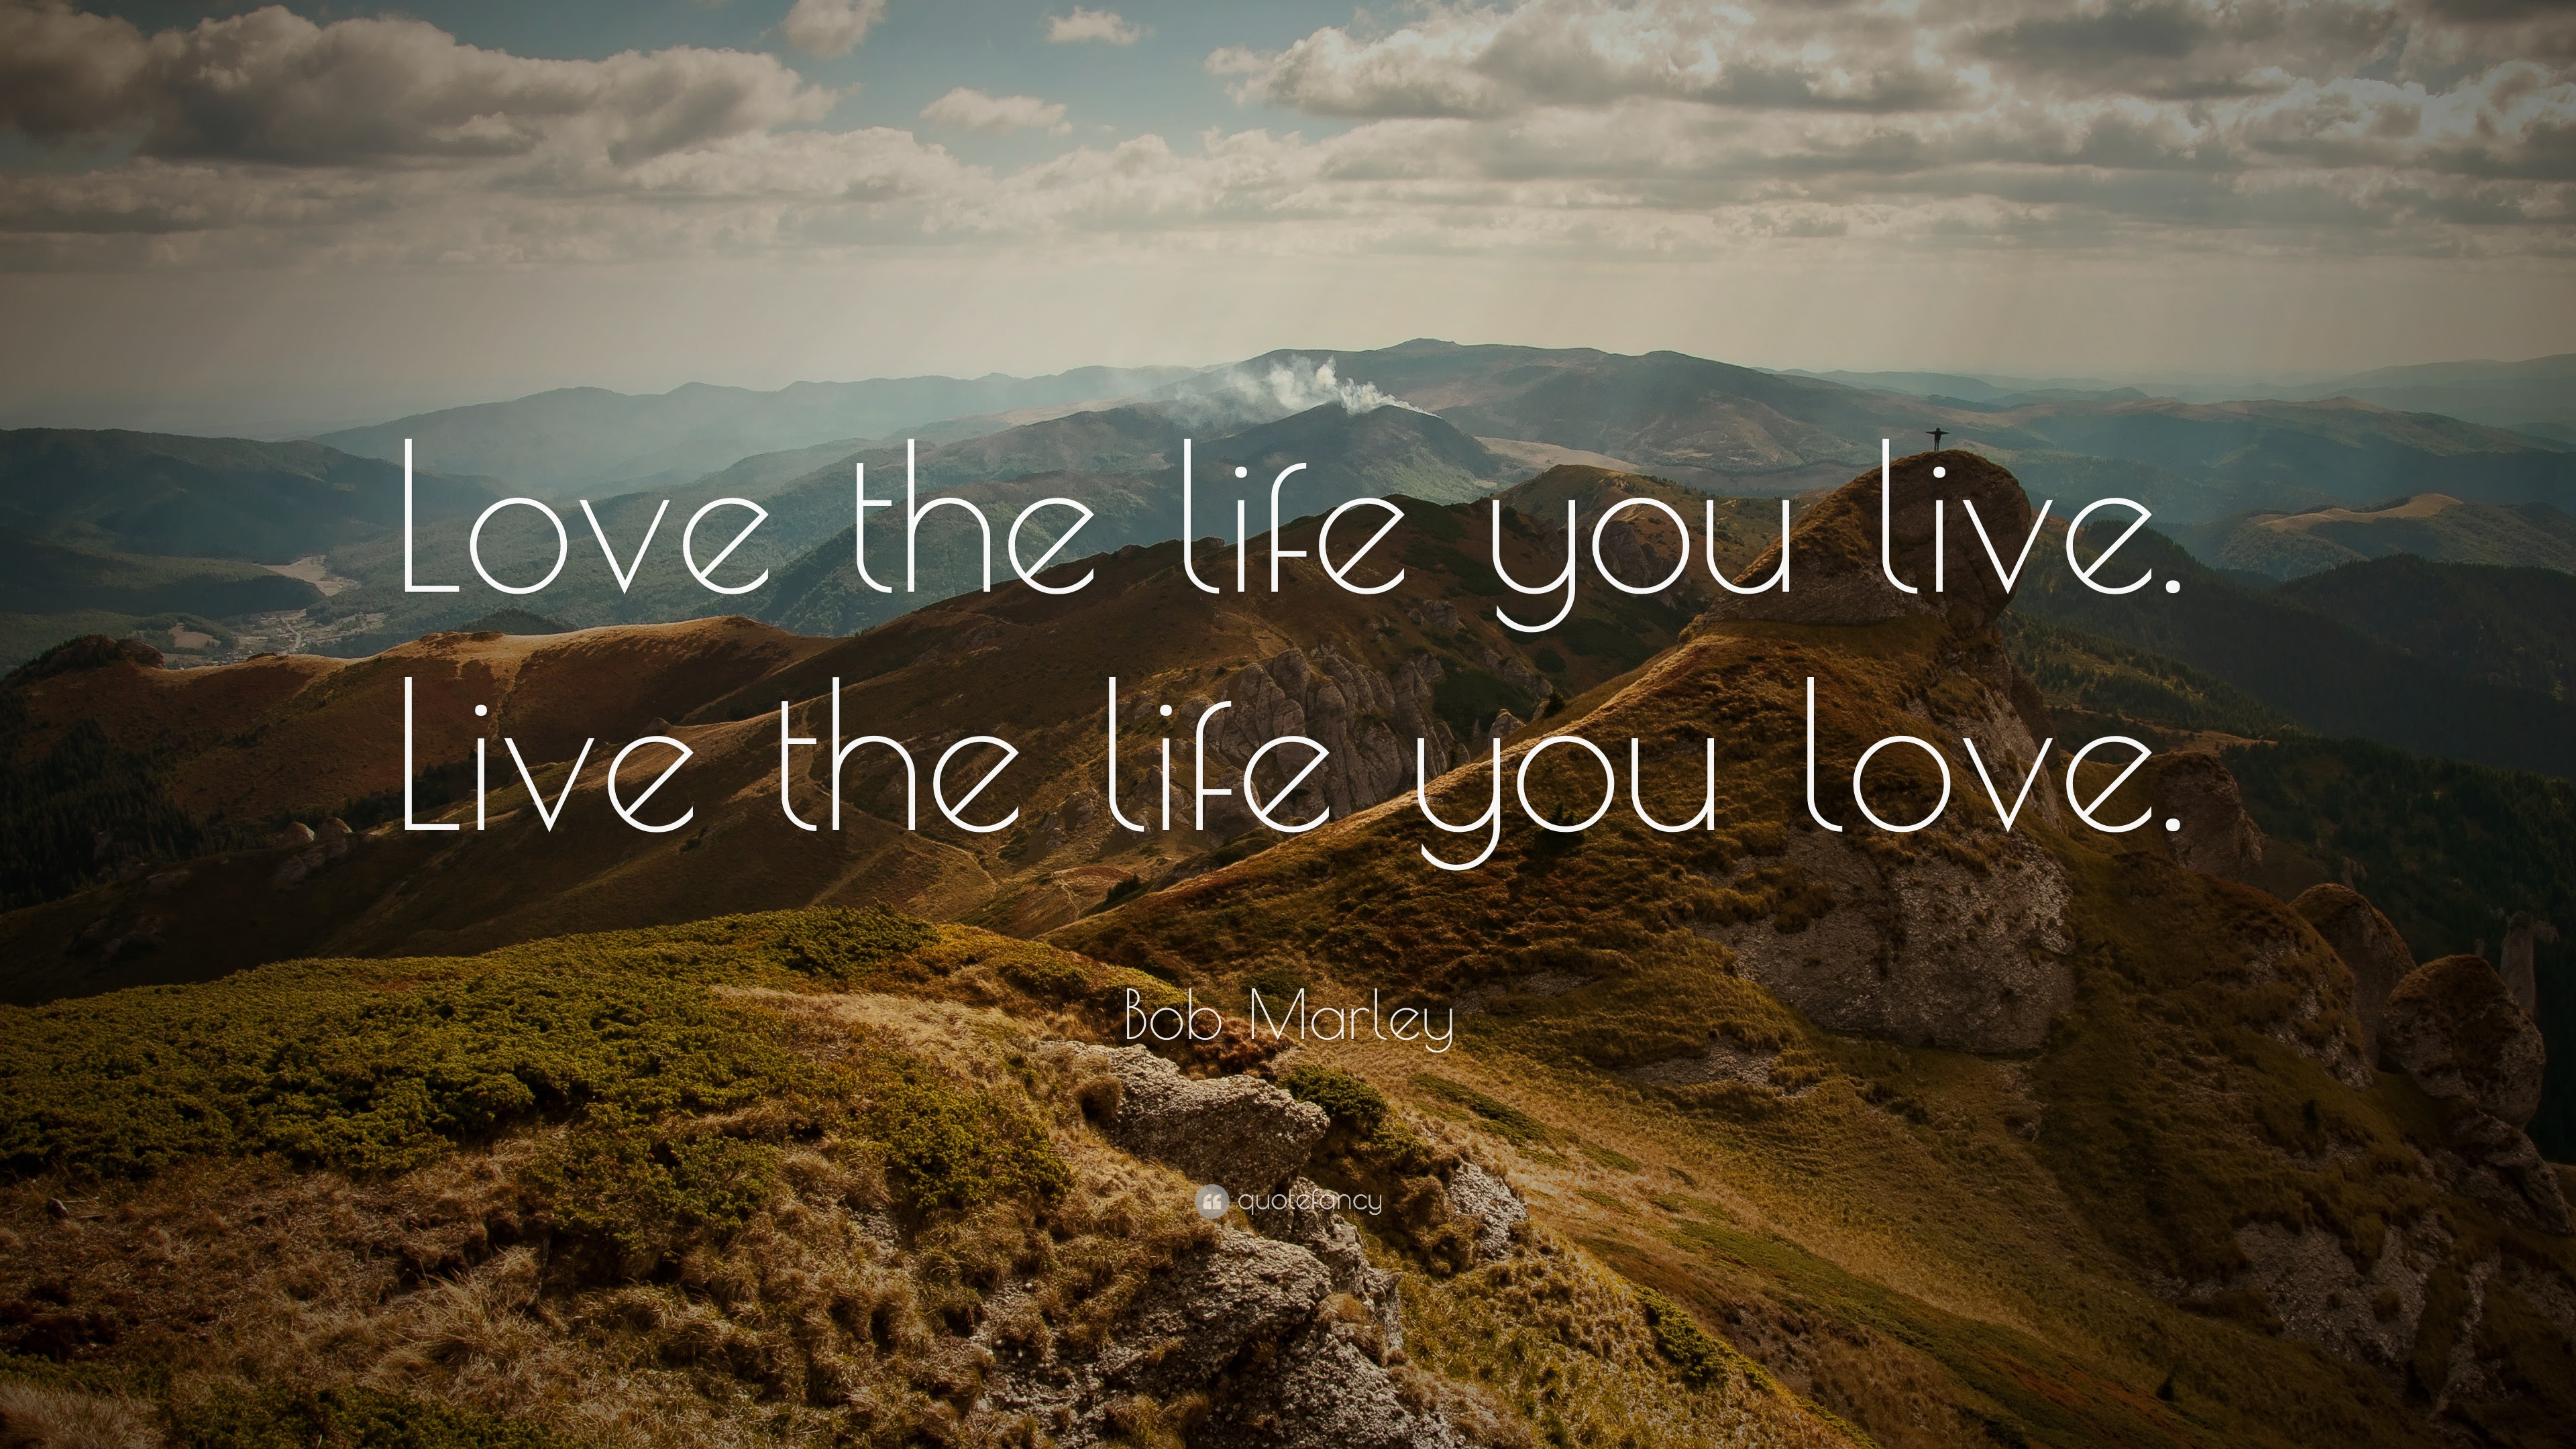 The post 100 Inspirational Quotes That Will Make You Love Life Again appeared first on Lifehack